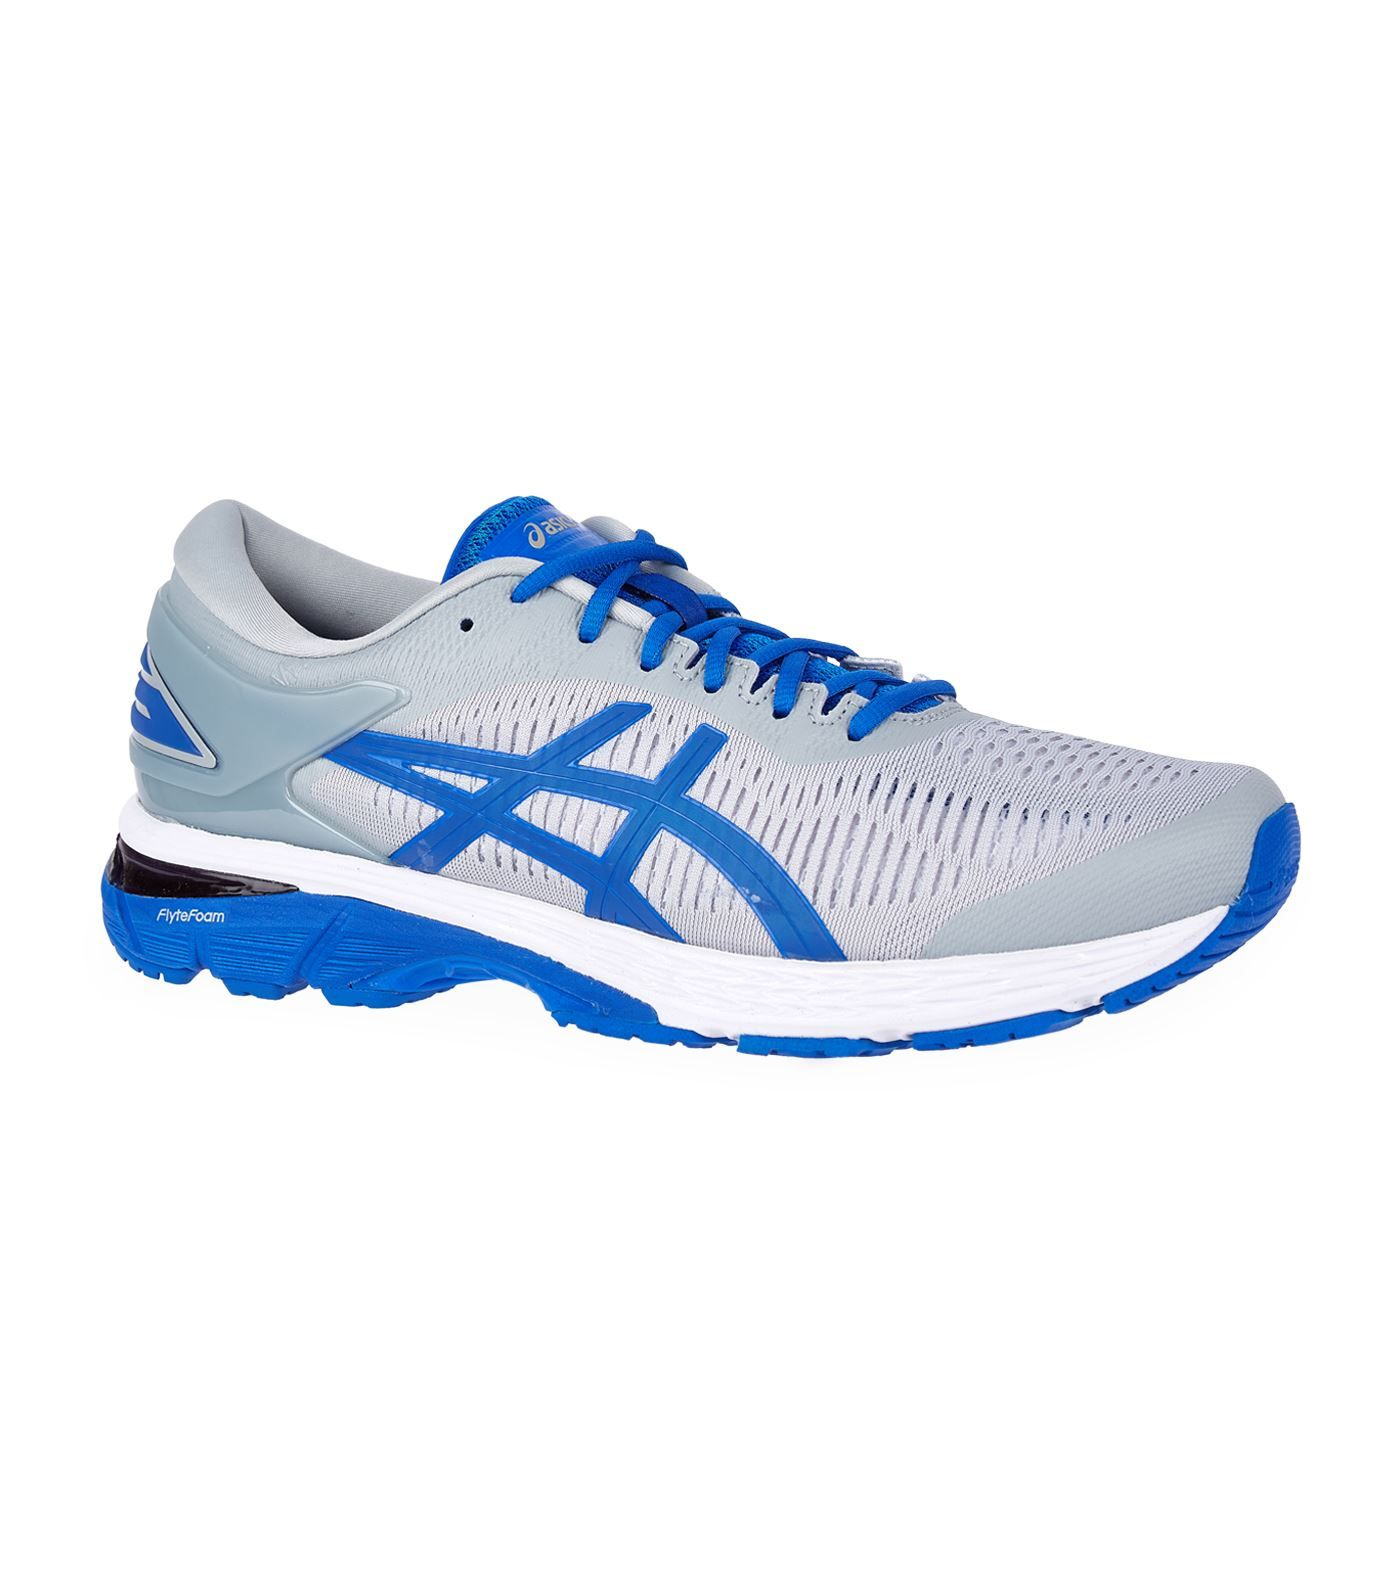 30f78a9f72d ASICS GEL-KAYANO 25 LITE-SHOW TRAINERS.  asics  cloth